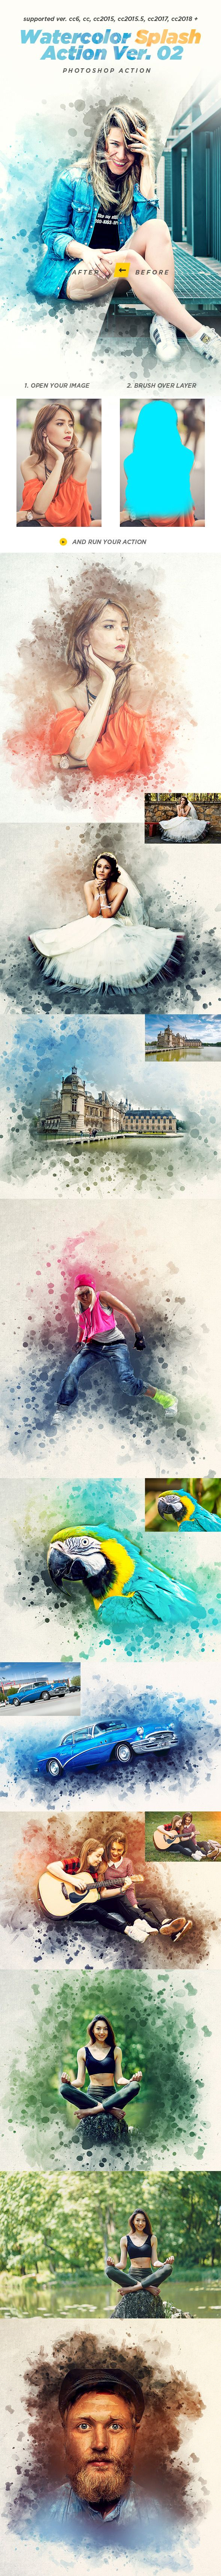 Watercolor Splash Photoshop Action Ver. 02 — Photoshop ATN #canvas #atn • Download ➝ https://graphicriver.net/item/watercolor-splash-photoshop-action-ver-02/21461987?ref=pxcr